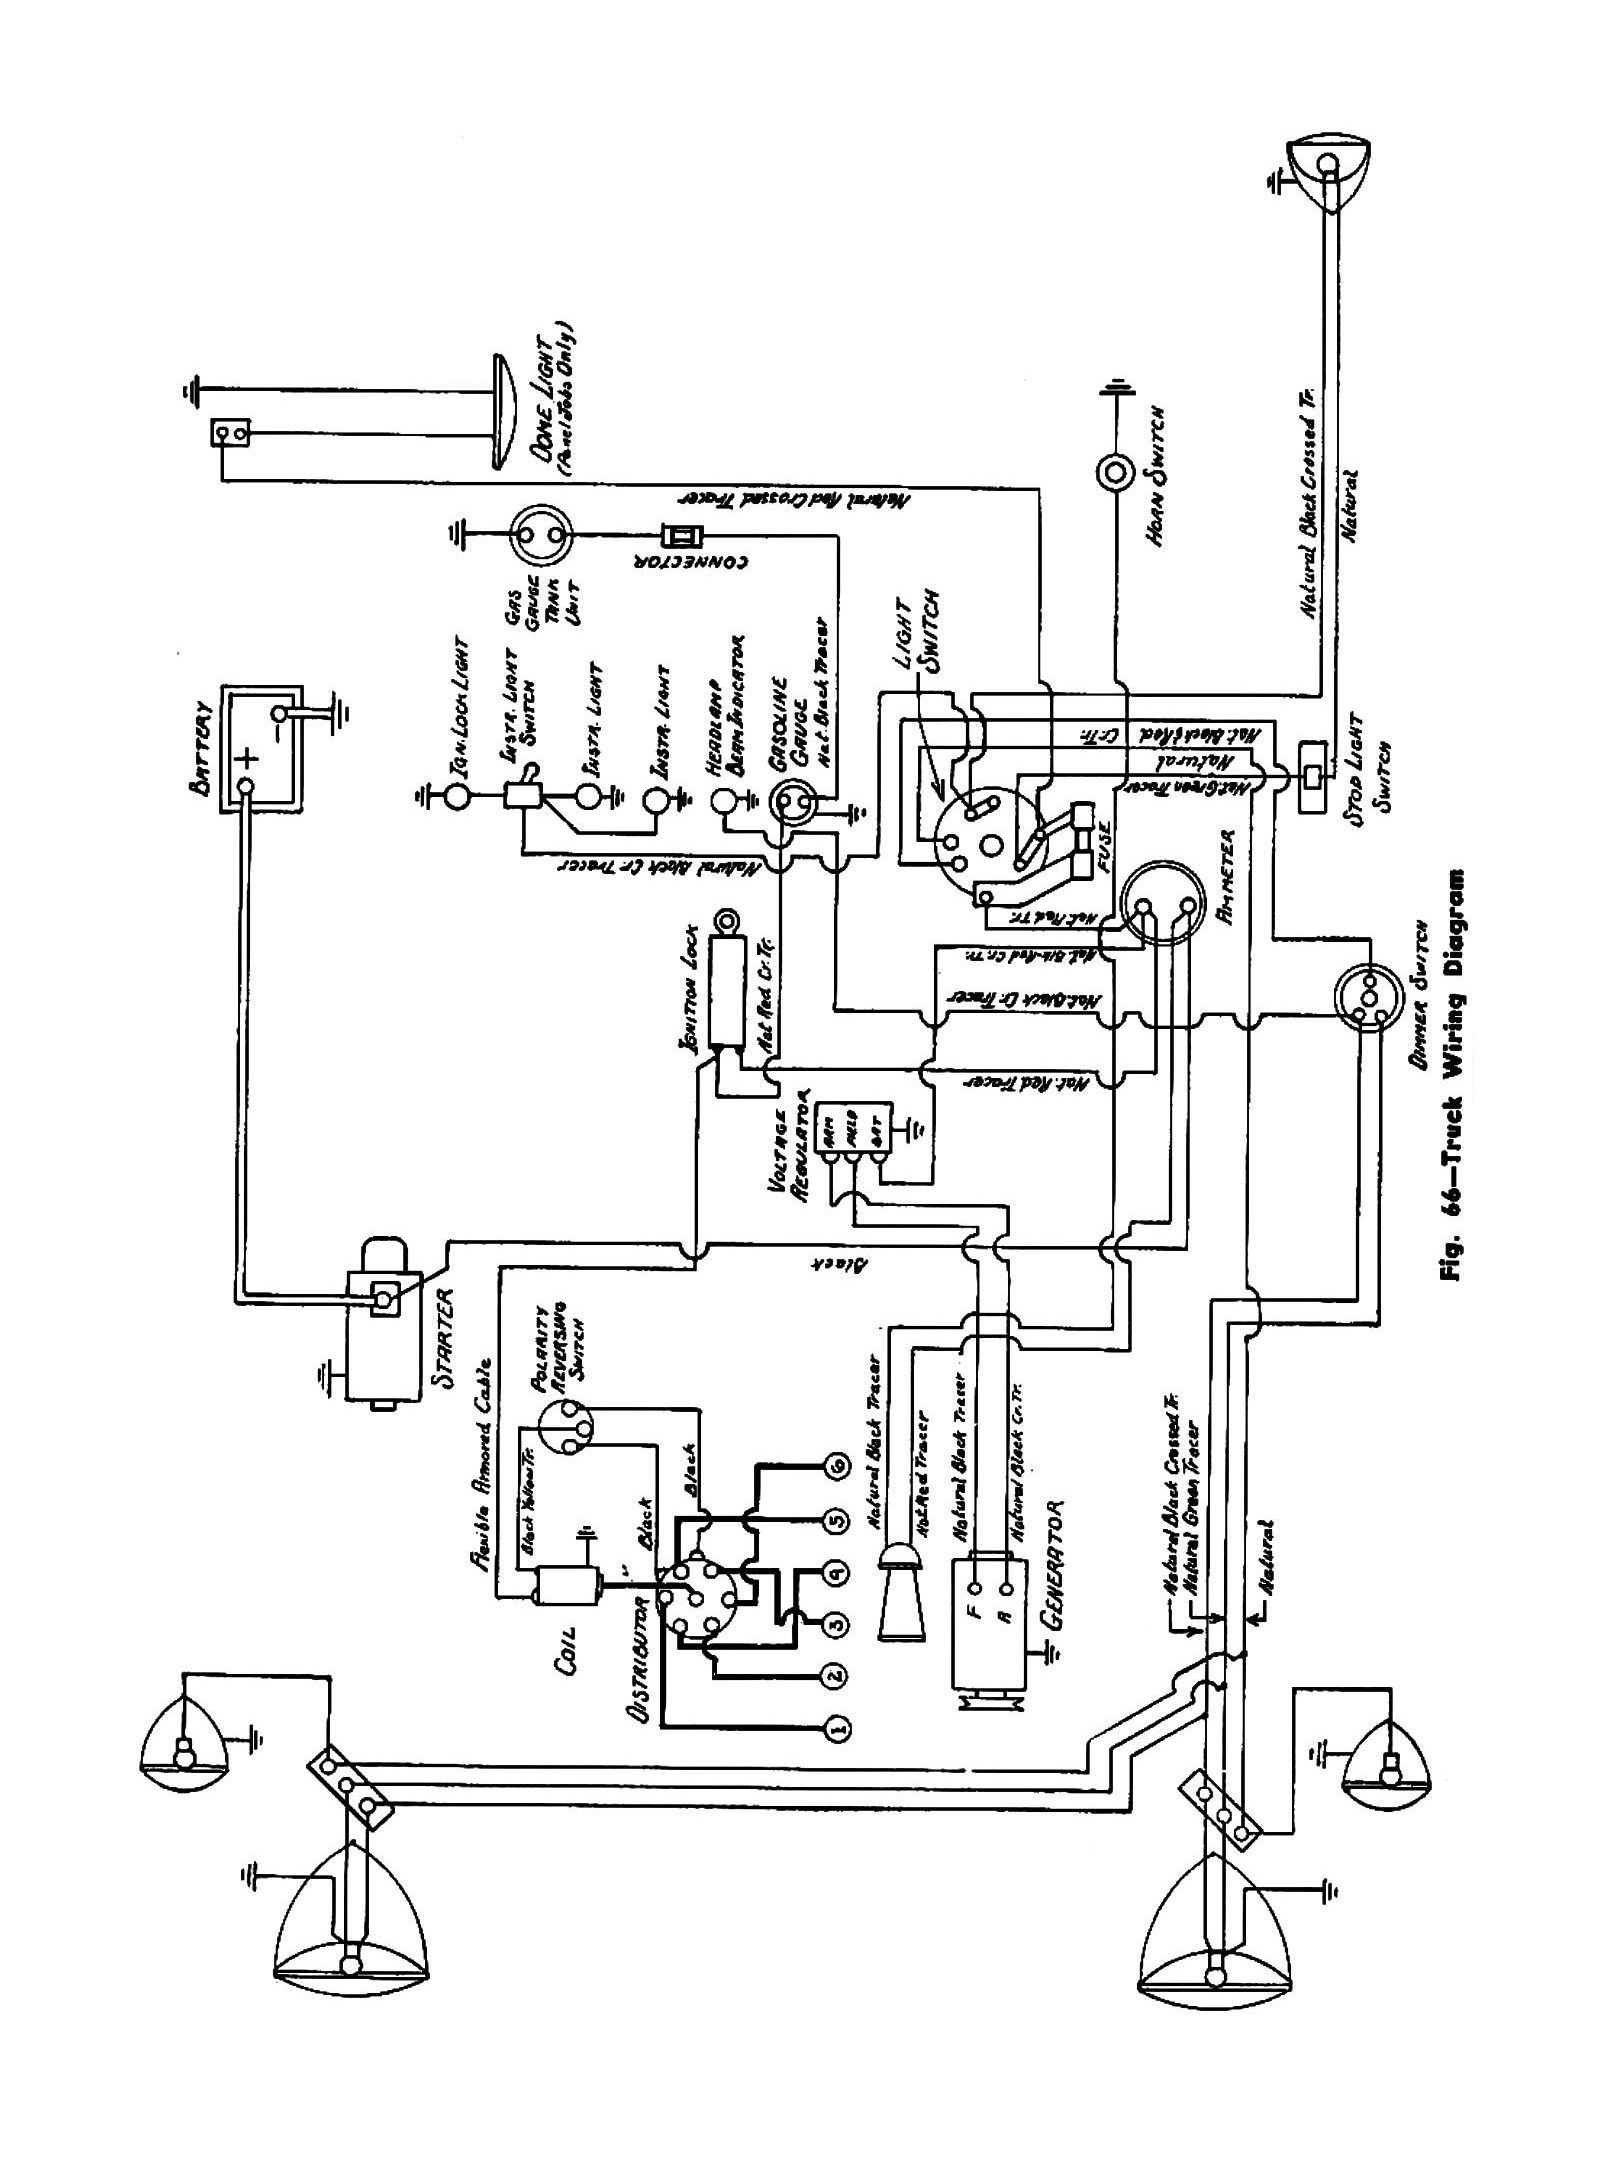 hight resolution of 1954 dodge truck wiring harness wiring diagram paper 1954 ford wiring diagram 1953 dodge pickup wiring